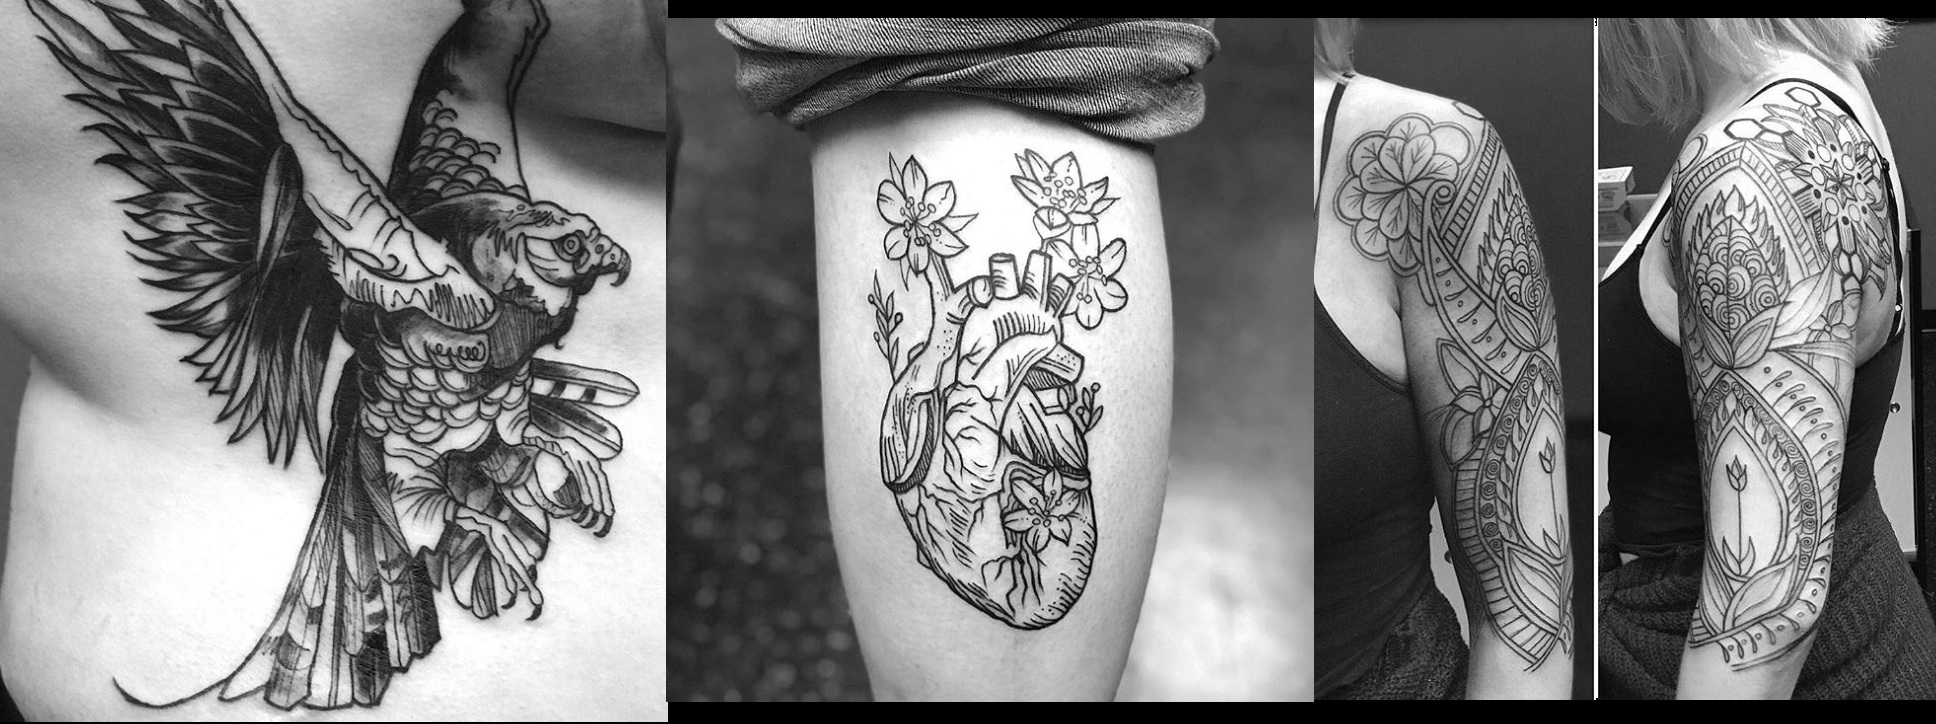 Here are a few tattoos to really showcase the versatility of Rhona's style.